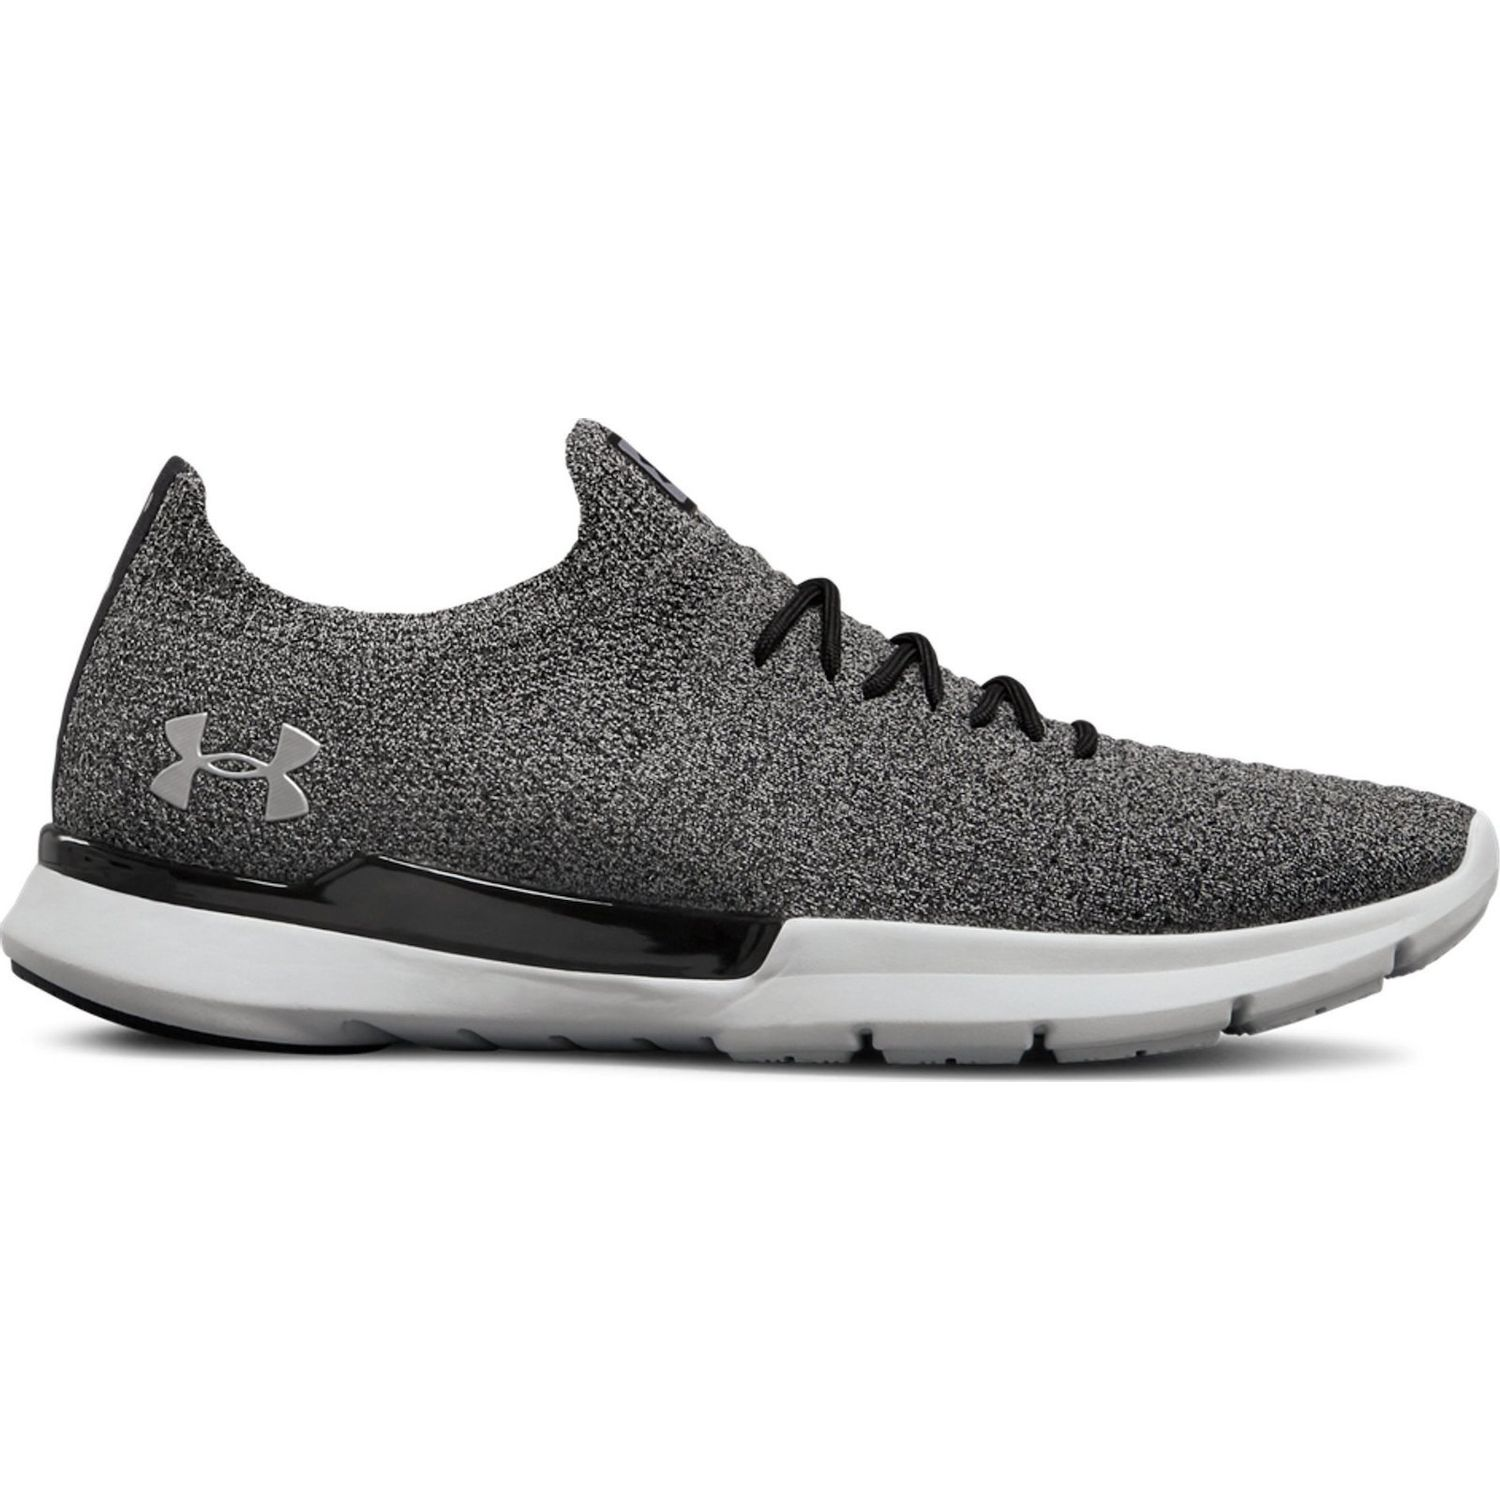 93dd470d939 Zapatilla Under Armour Slingwrap Phase Running Hombre - sporting